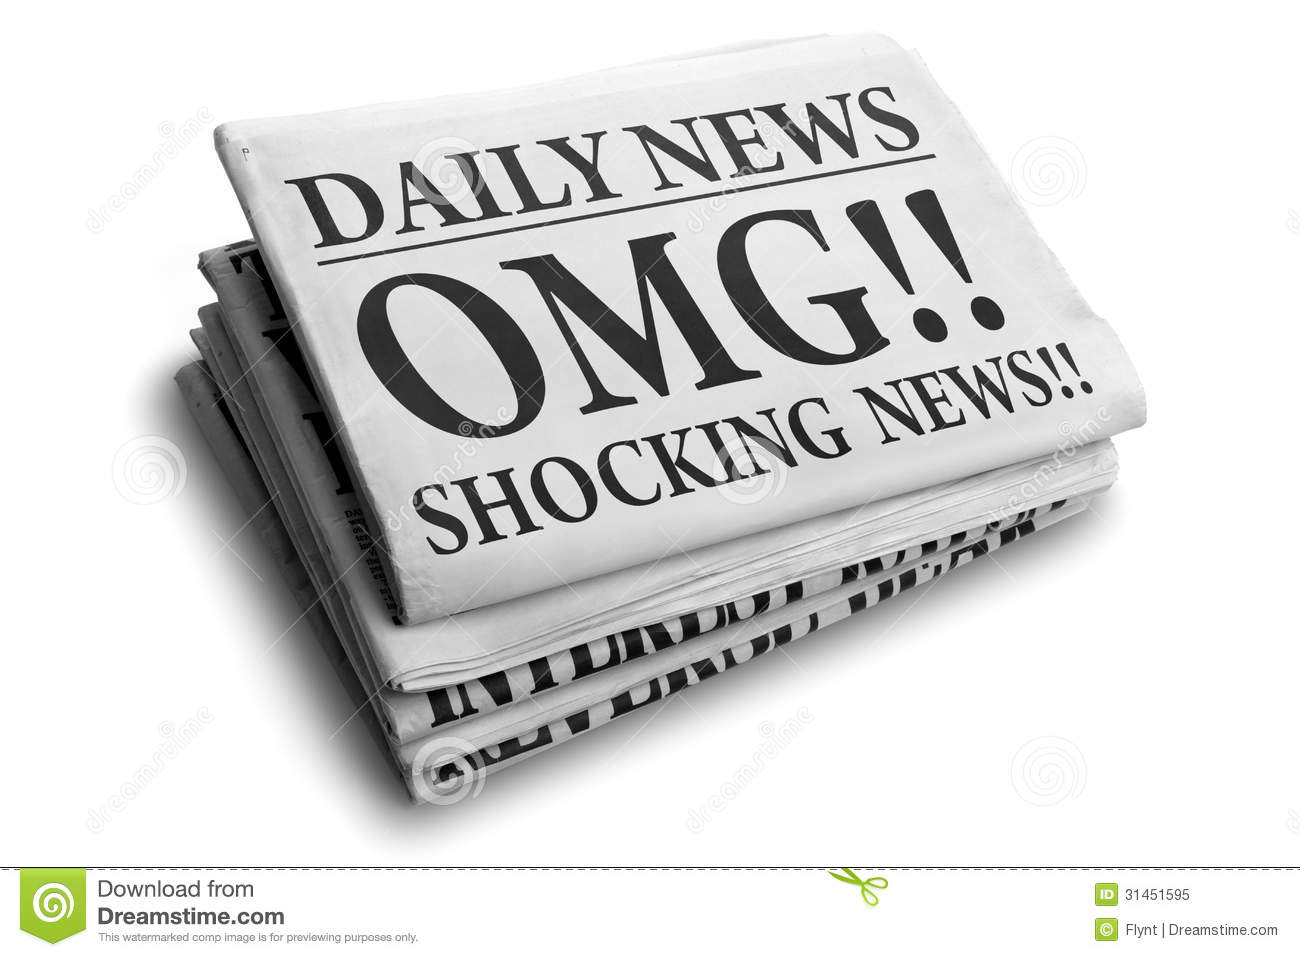 OMG Shocking News Daily Newspaper Headline Royalty Free Stock Photo ...